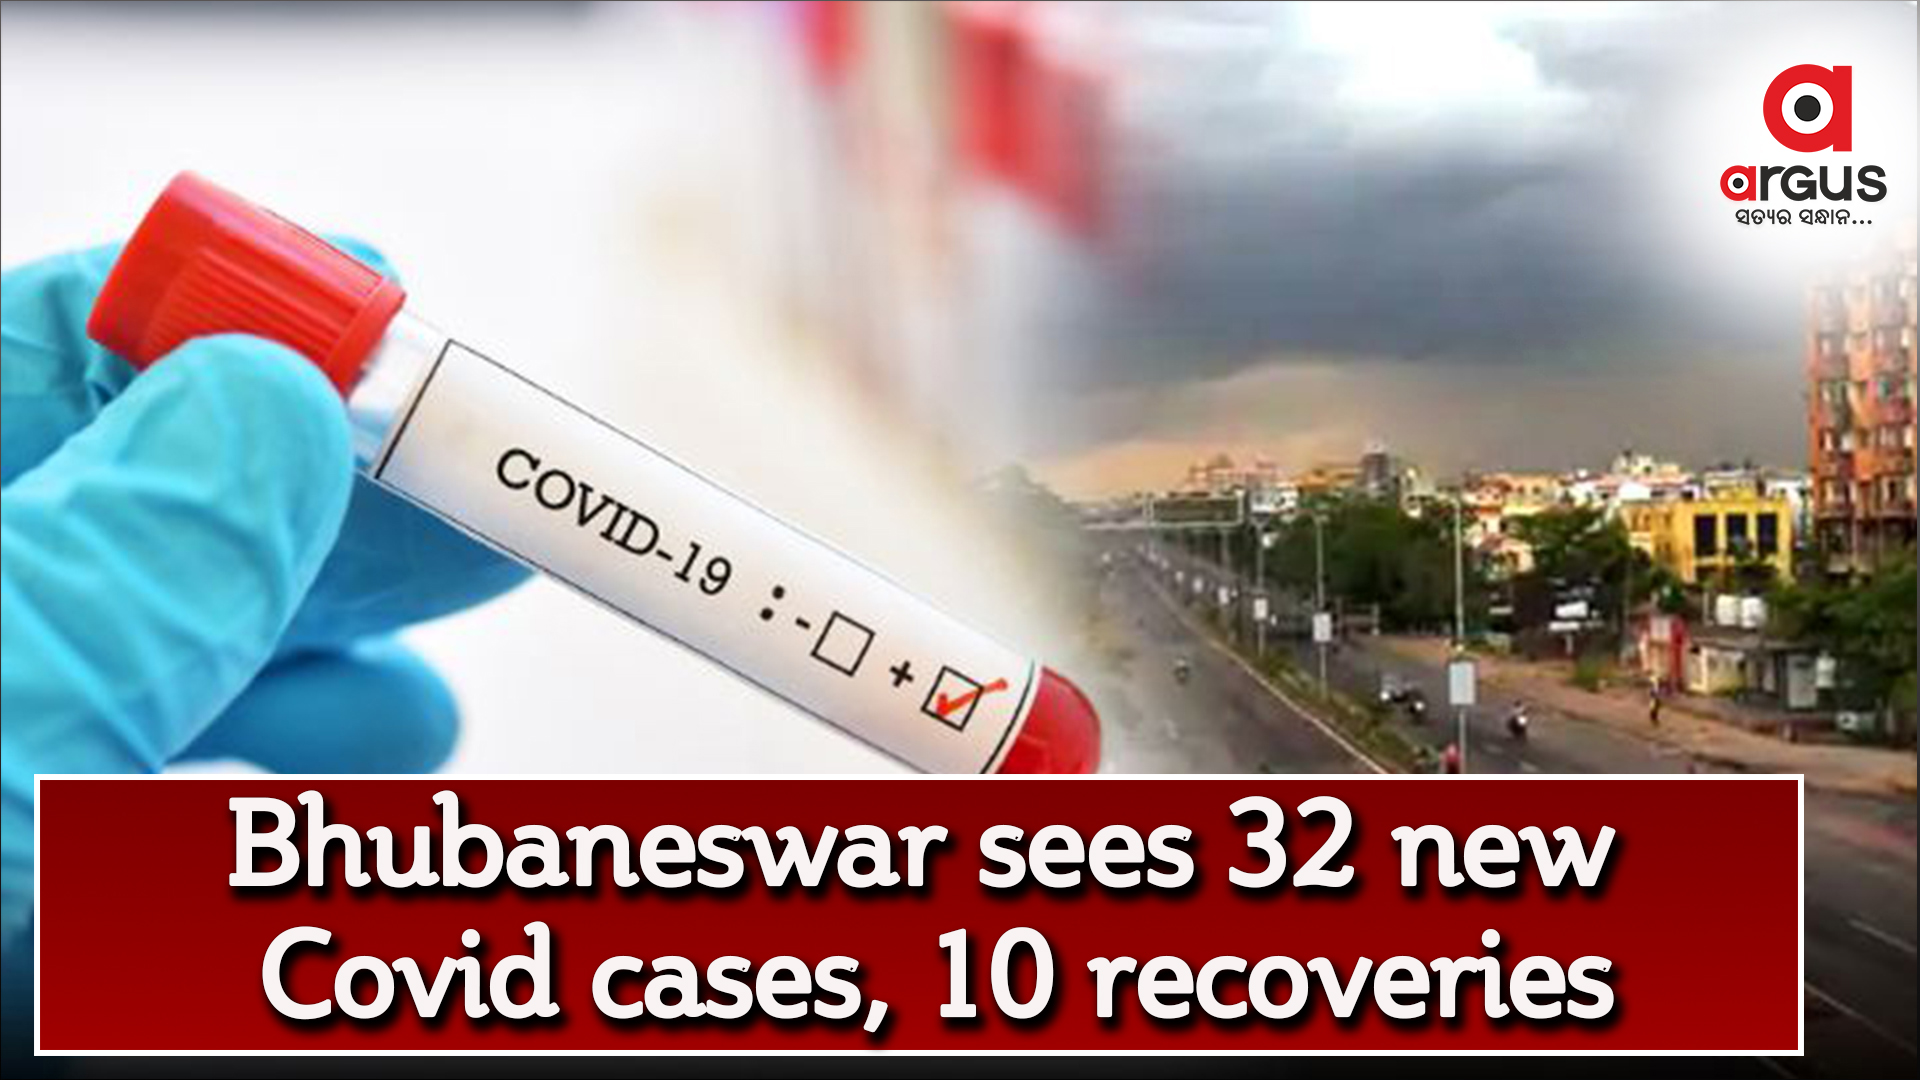 Bhubaneswar sees 32 new Covid cases, 10 recoveries